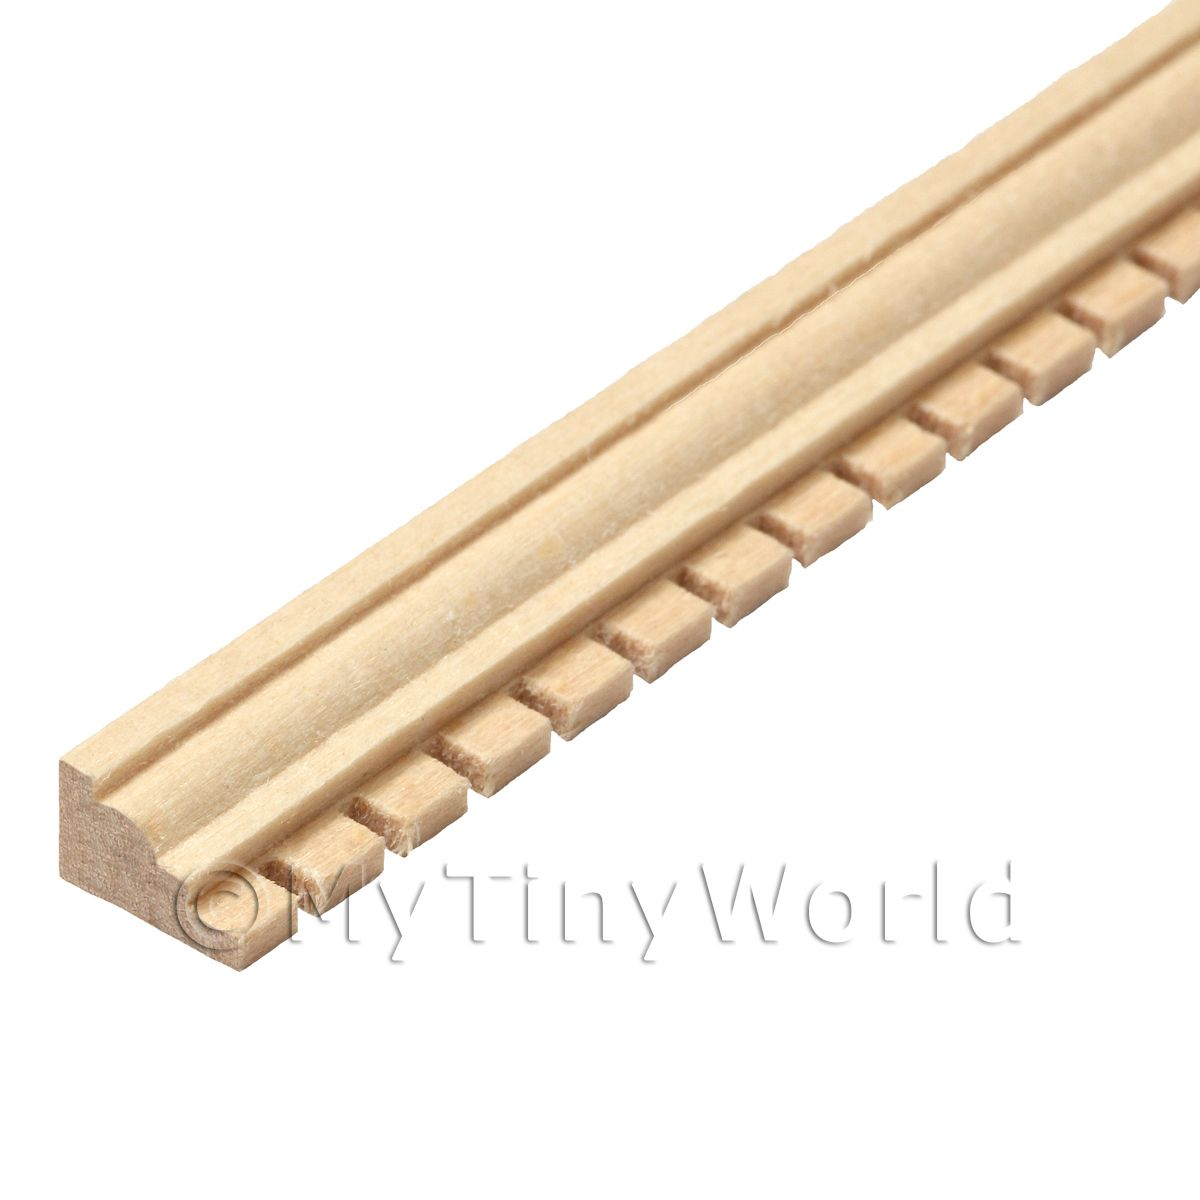 Dolls House Miniature Wood Decorative Moulding (Style 3)